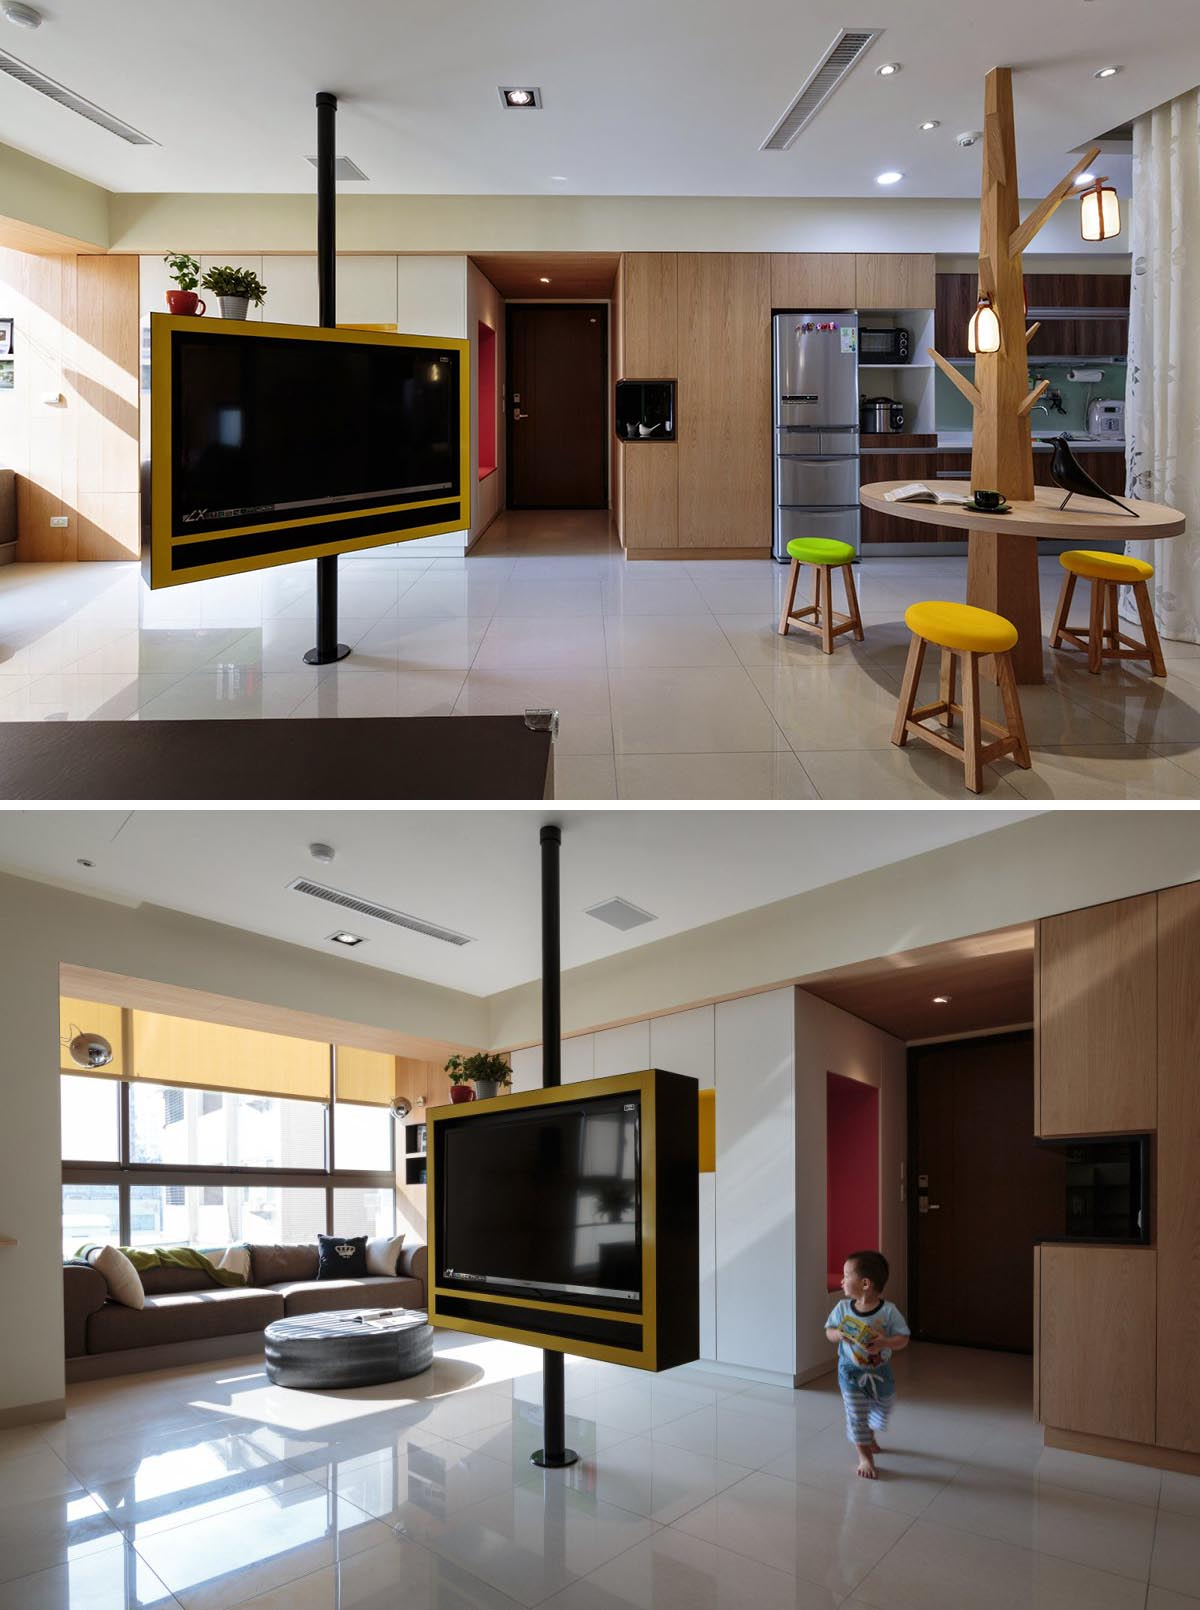 A rotating television that can be enjoyed from any room in this open plan apartment interior.